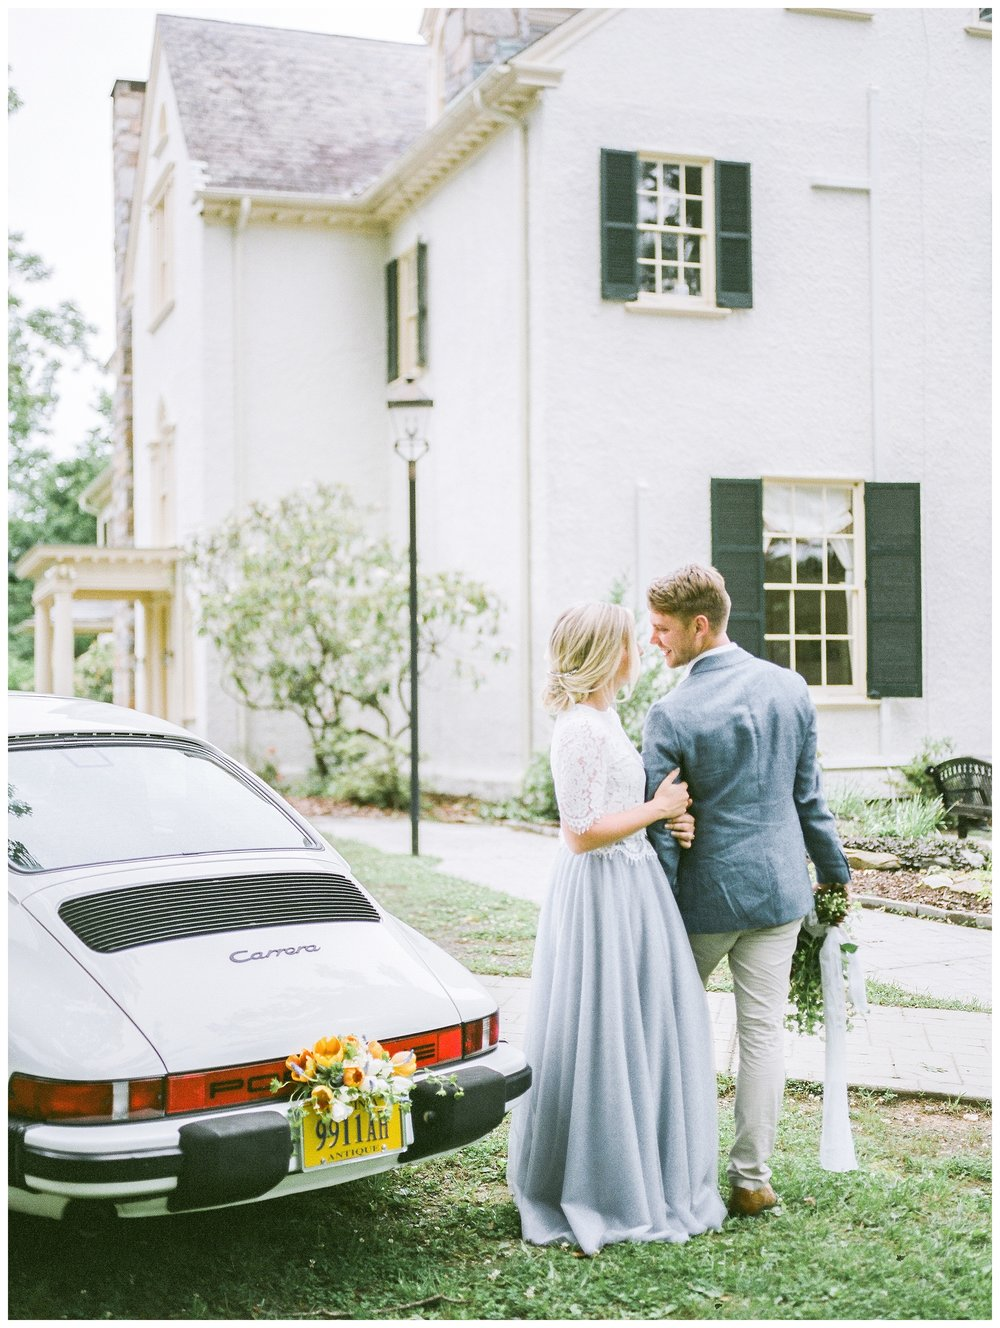 Rust Manor Wedding | Virginia Wedding Photographer Kir Tuben_0052.jpg